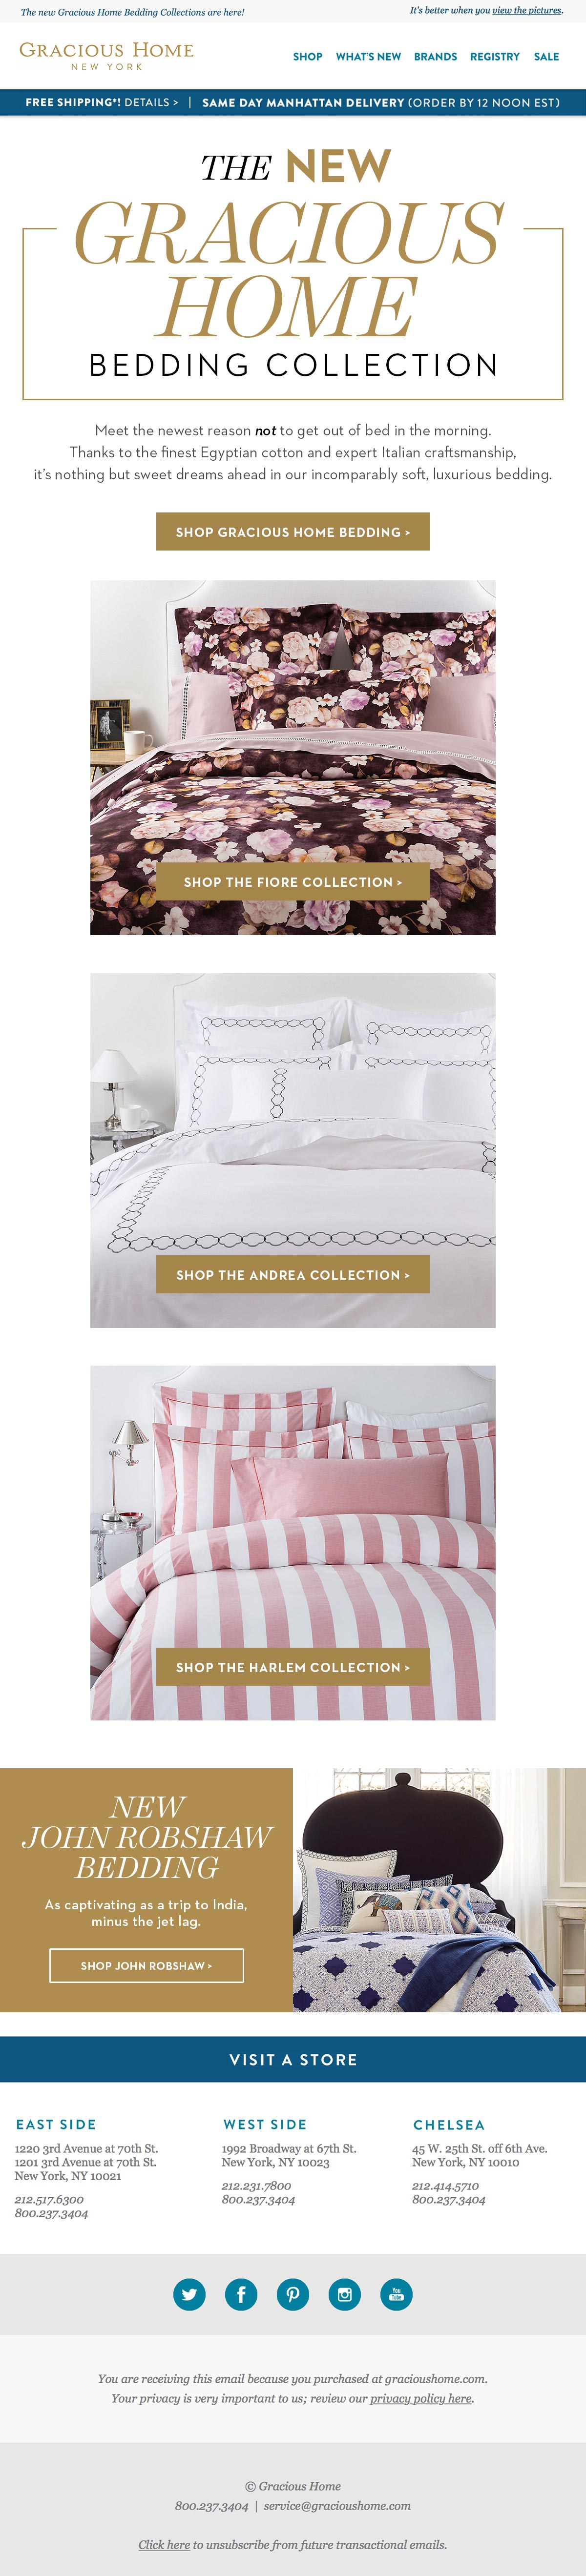 Gracious Home - Bedding email